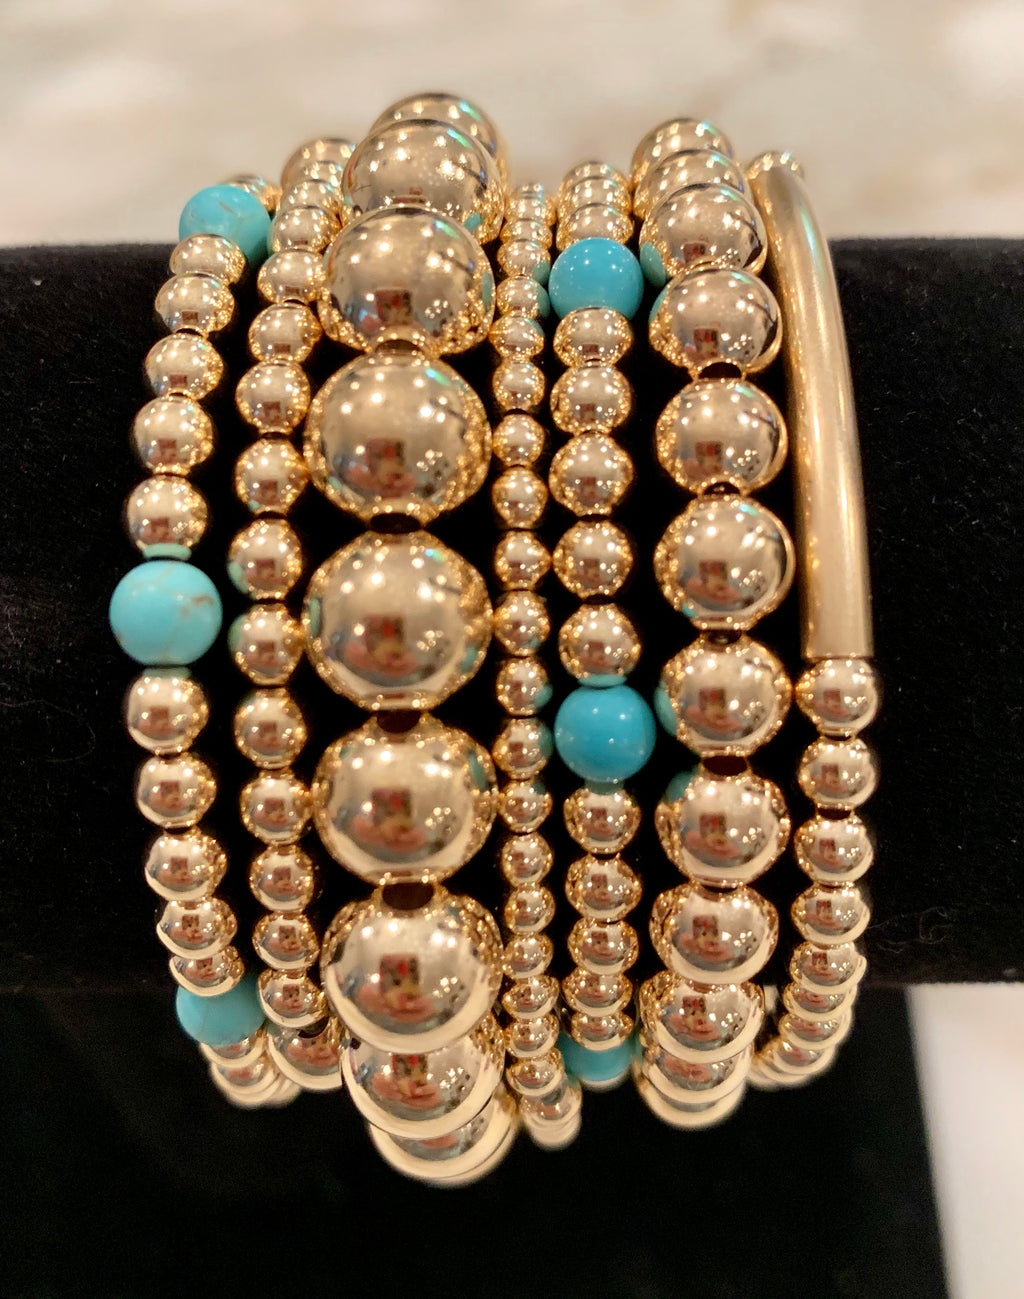 HEATHER 7 Bracelet Stack with Turquoise Beads